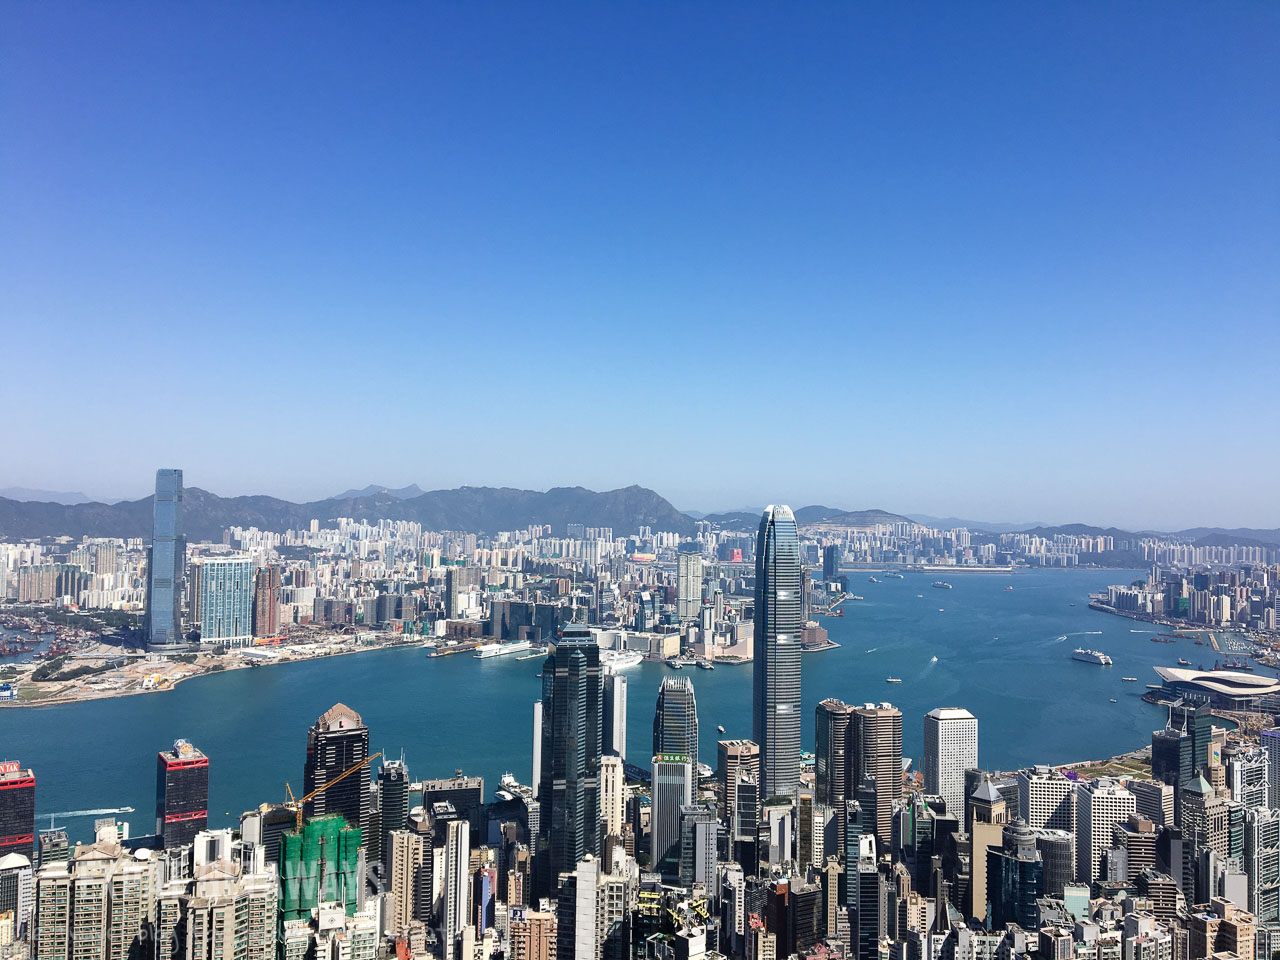 The view from Victoria Peak is spectacular